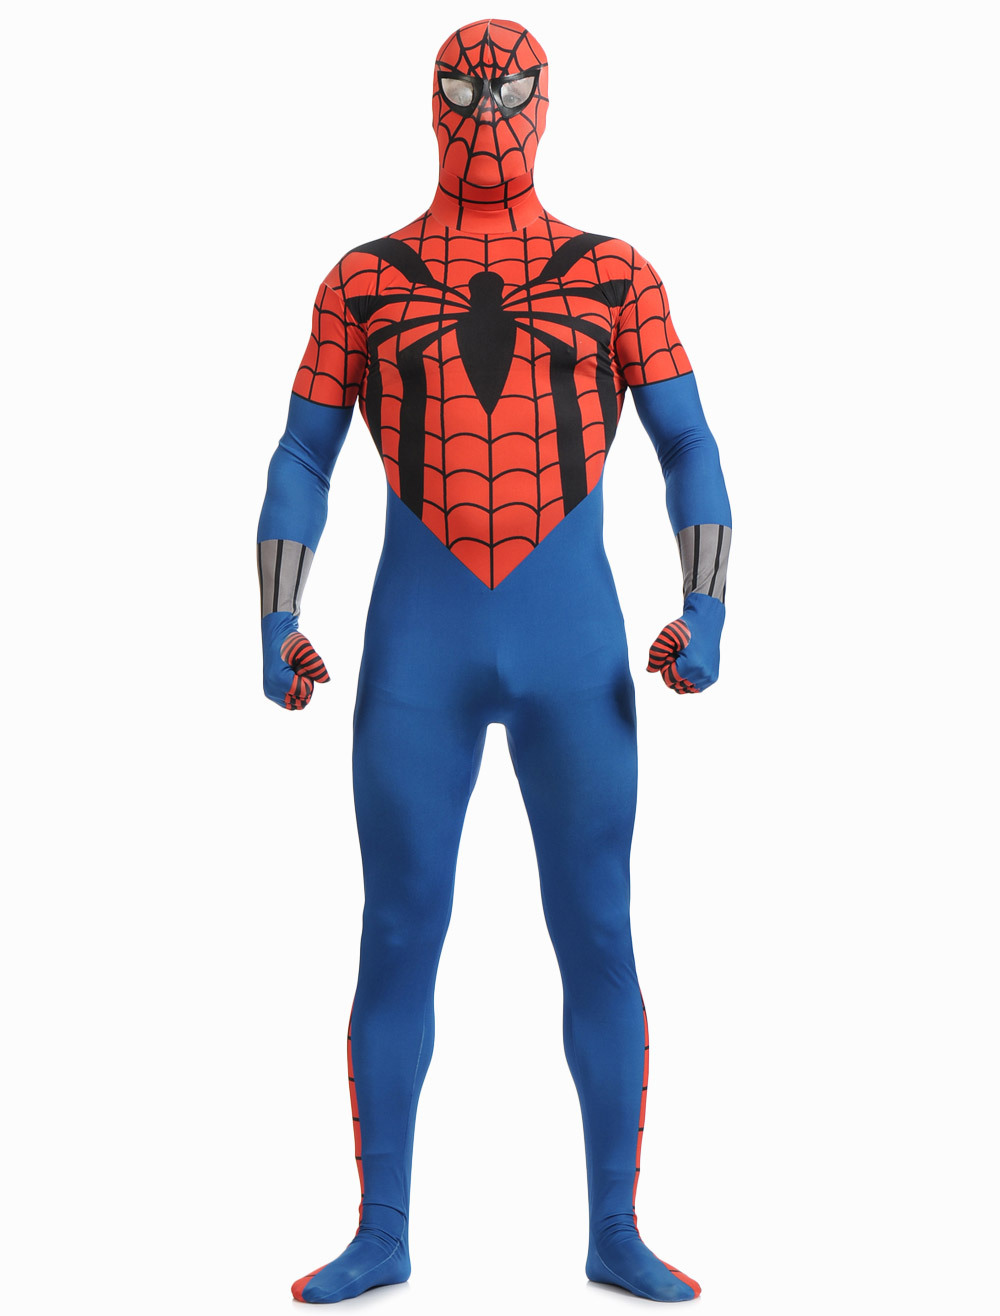 Compare Prices on Spiderman 2099 Costume- Online Shopping/Buy Low ...